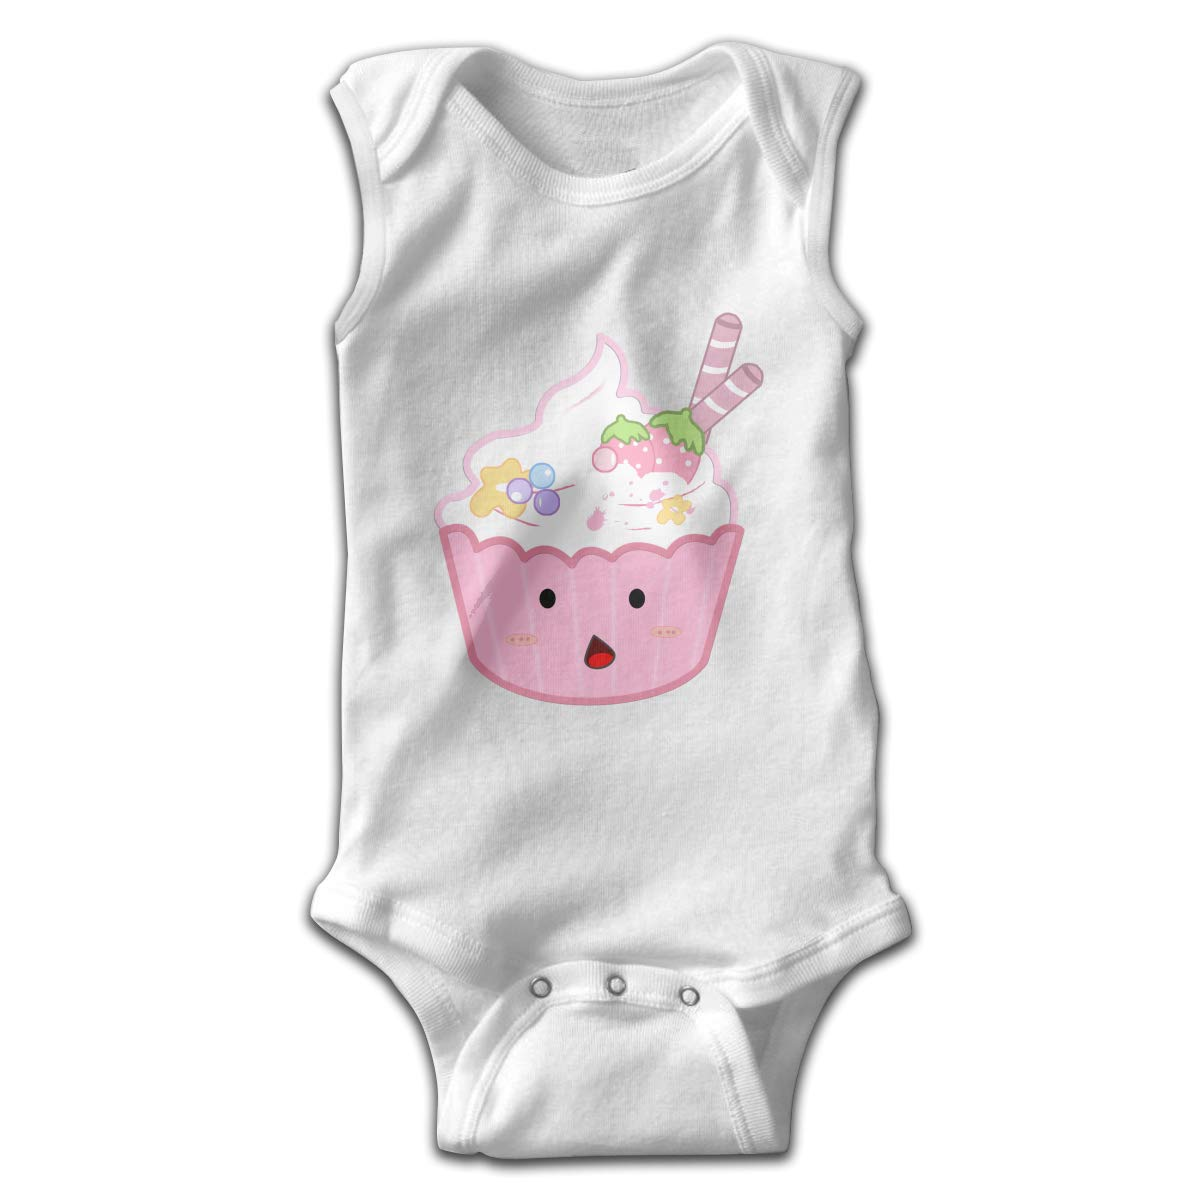 Toddler Baby Girls Rompers Sleeveless Cotton Jumpsuit,Ice Cream Outfit Winter Pajamas